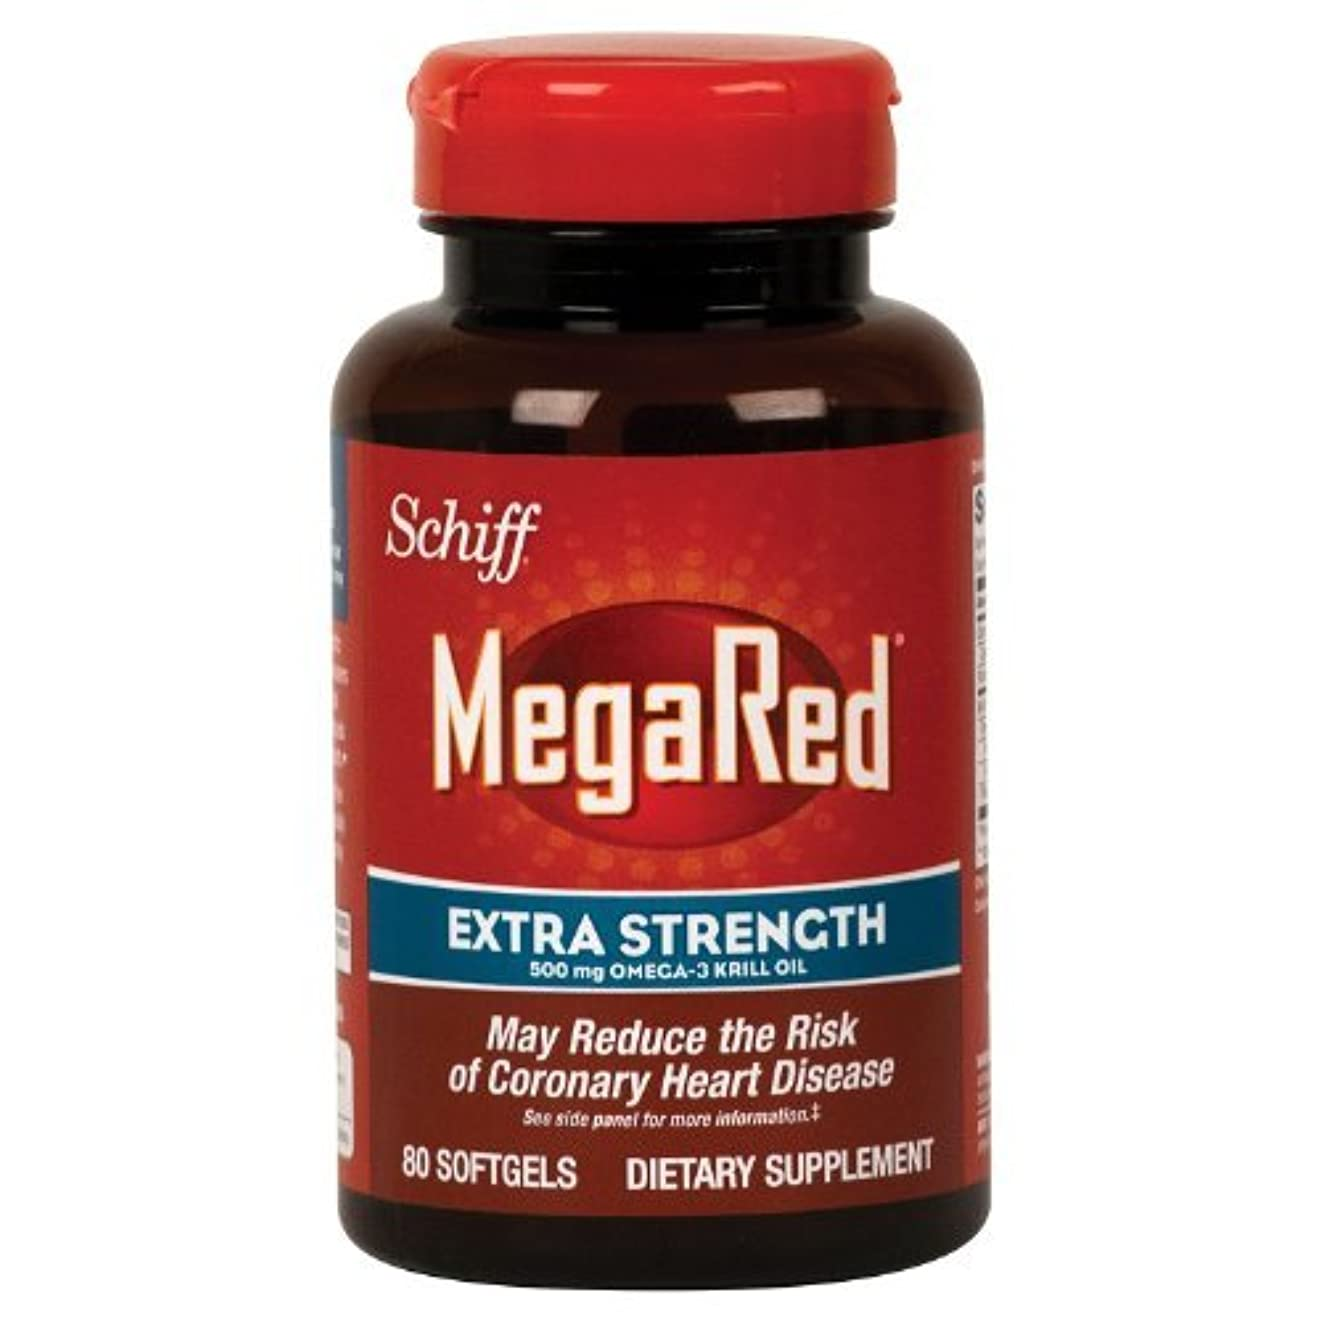 慣習勝利したカウンタSchiff Megared Extra Strength 500mg Omega-3 Krill Oil - 80 Softgels by Simply Right [並行輸入品]